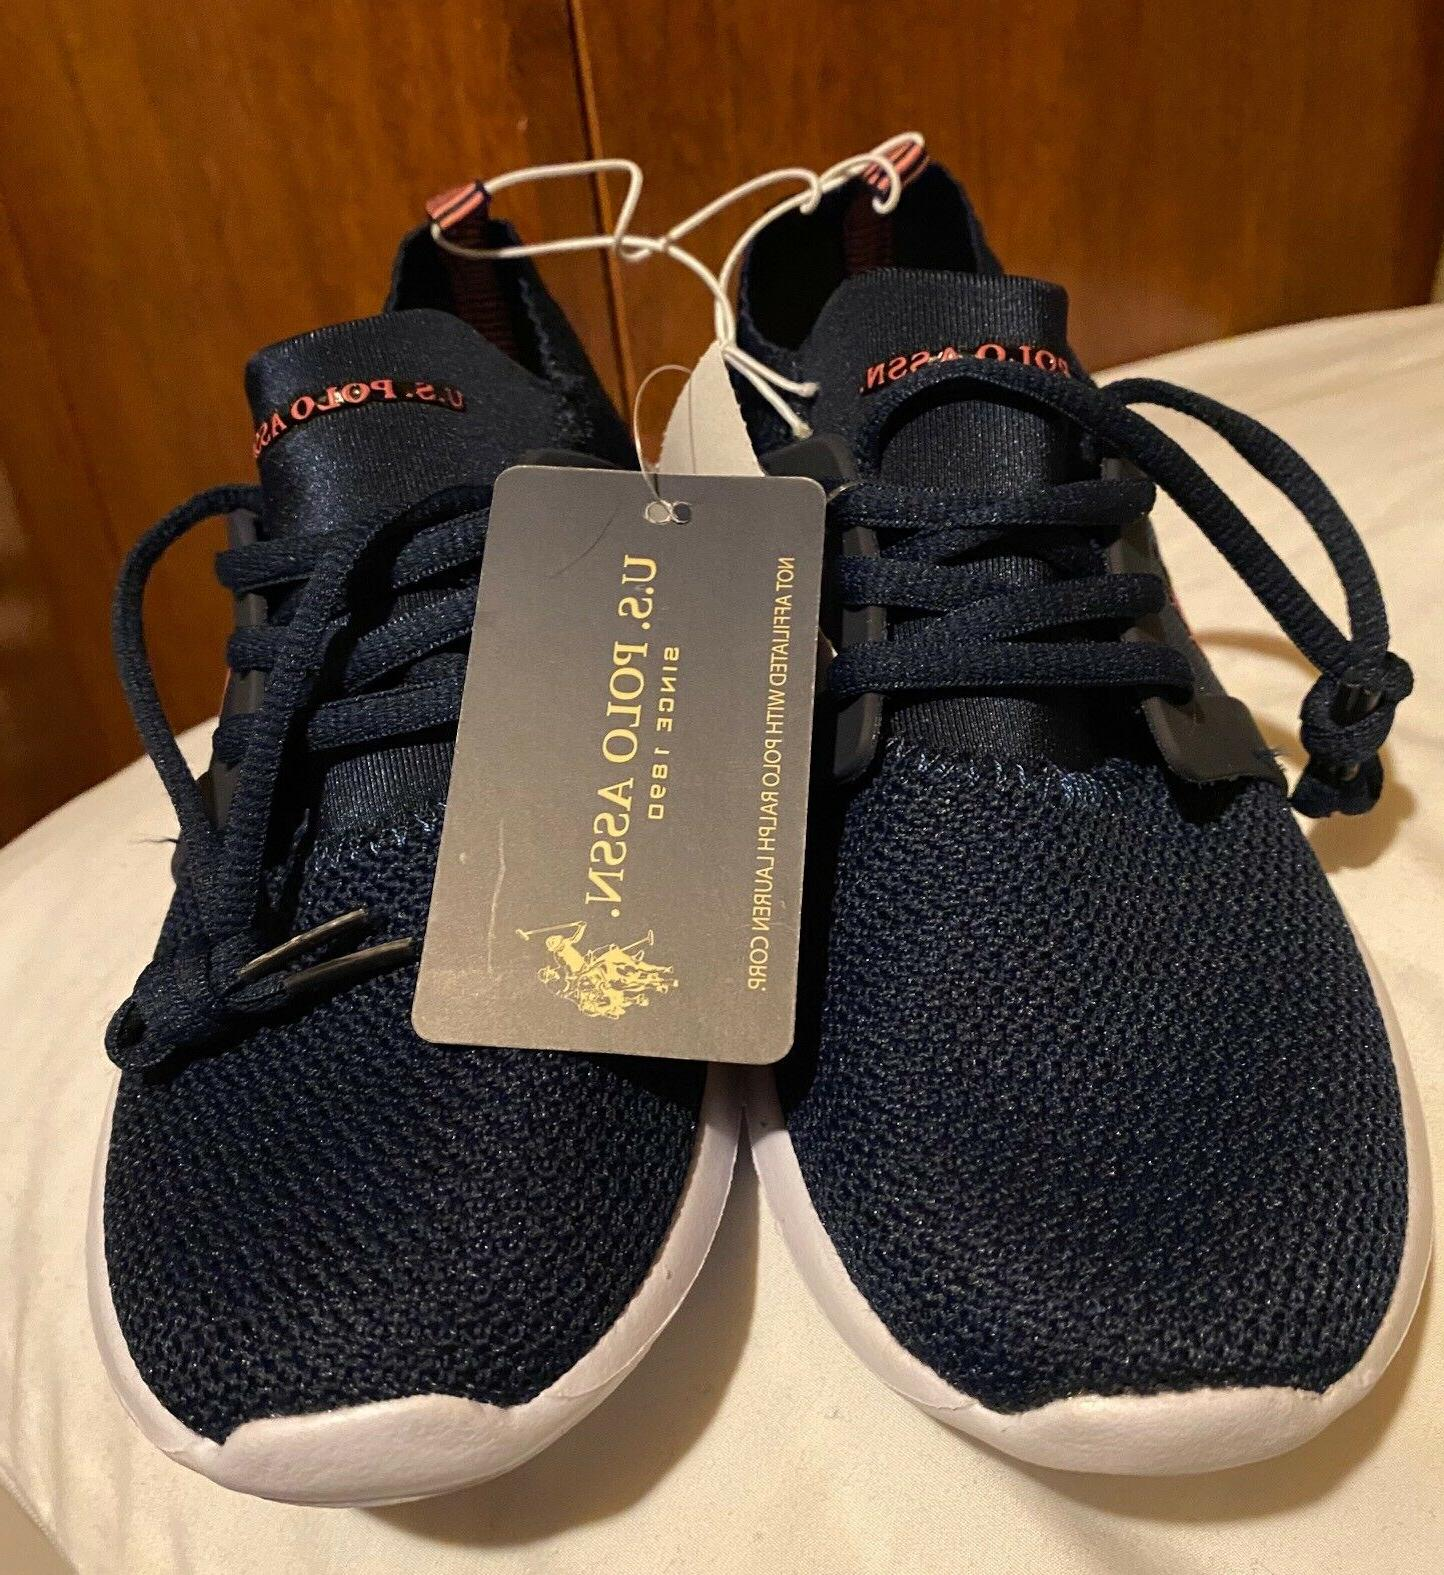 tennis shoes for girls in navy